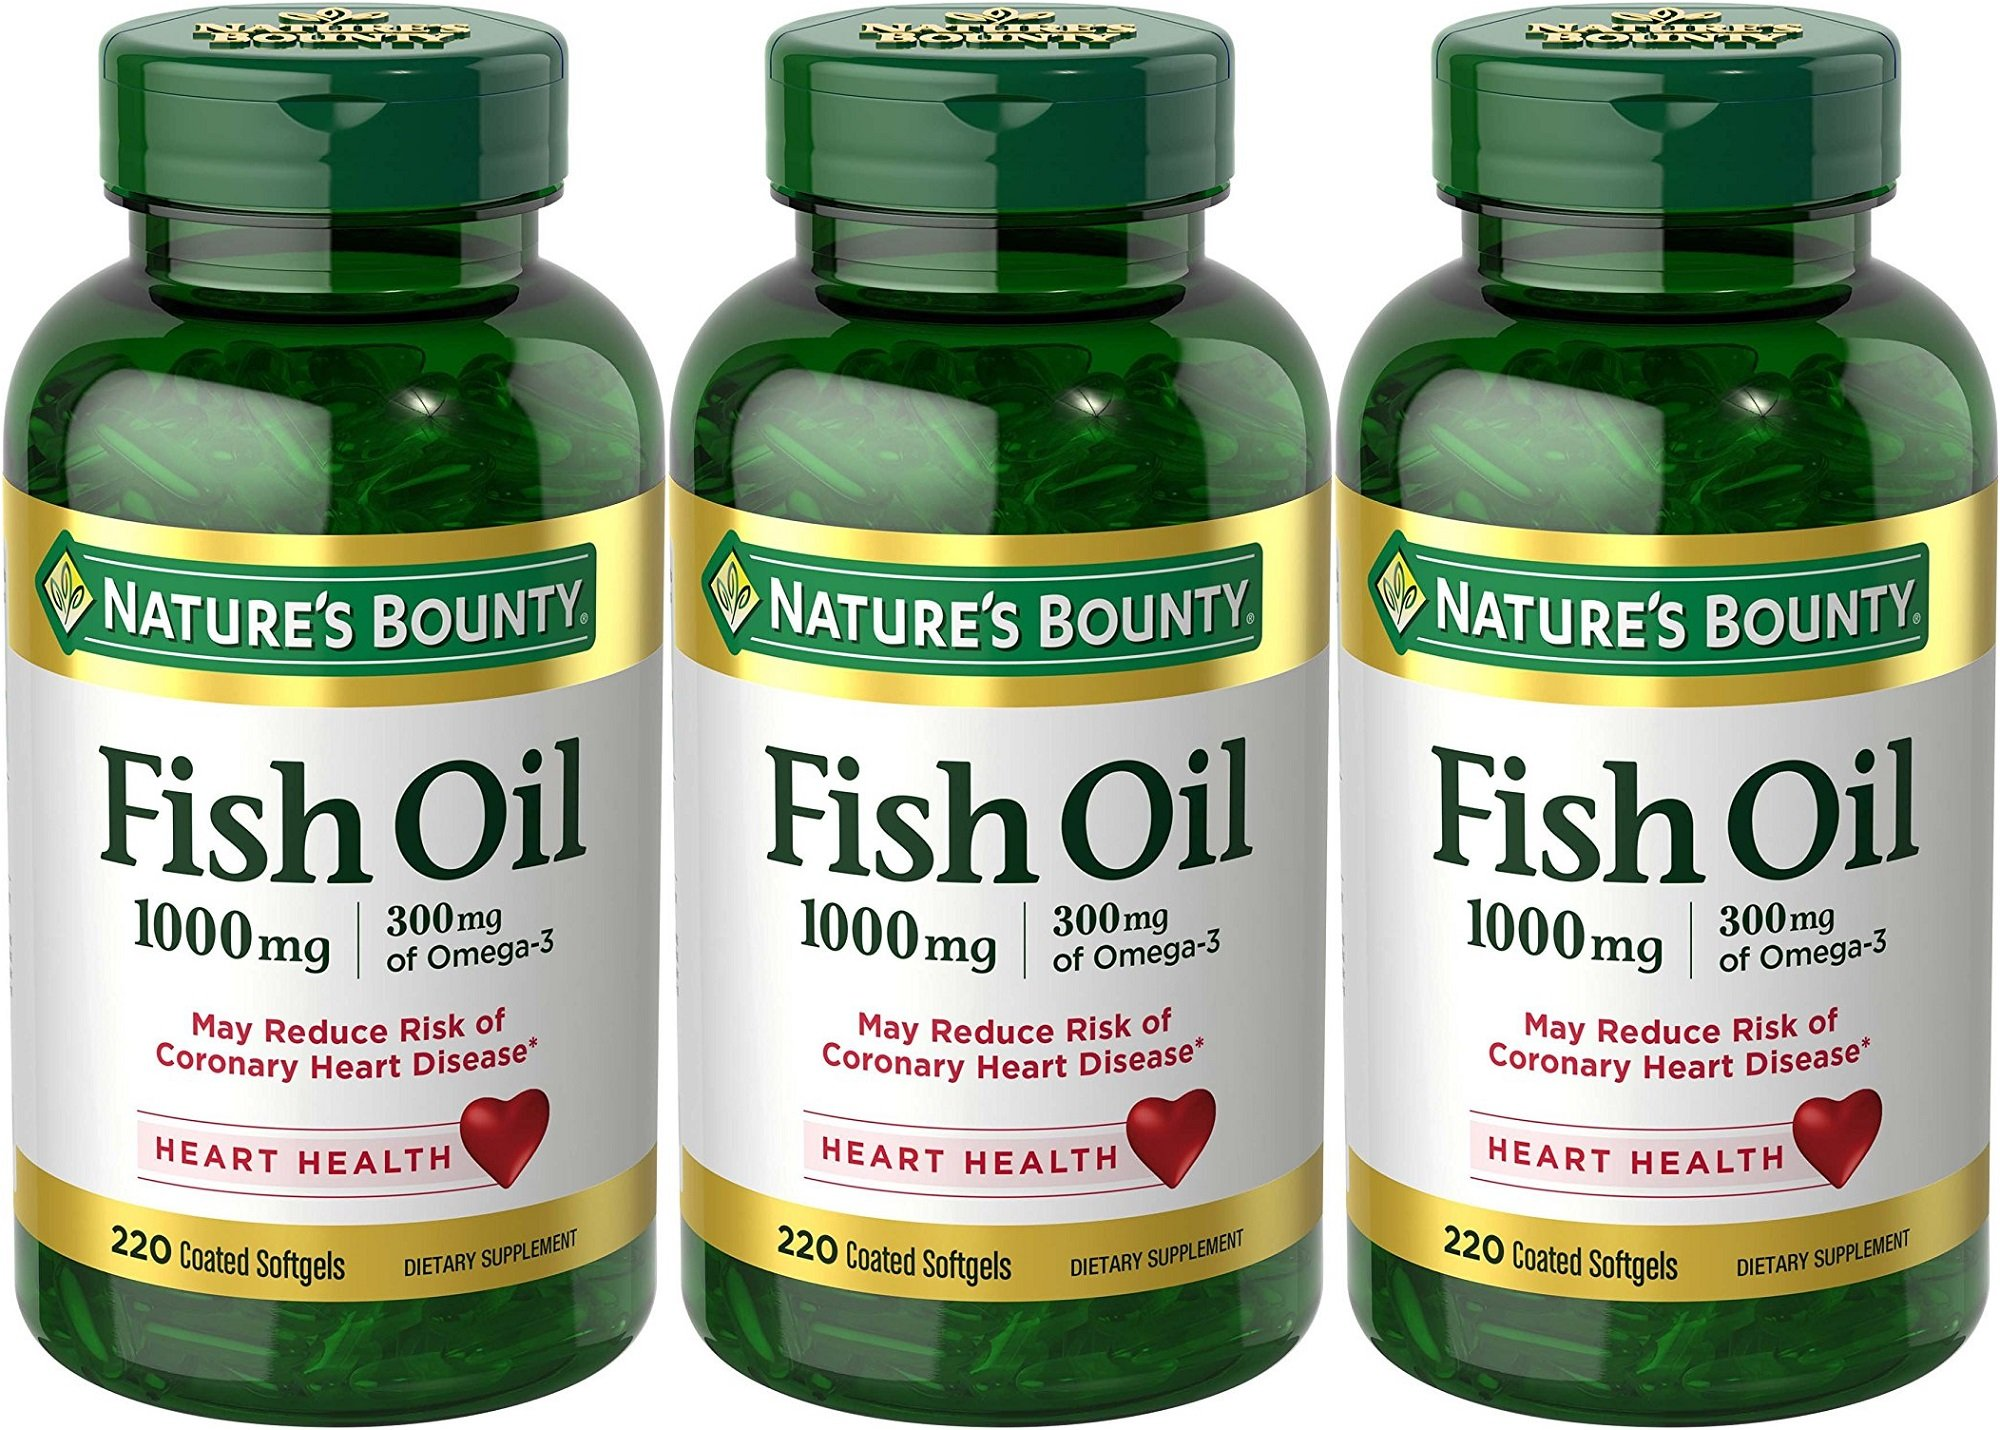 Nature's Bounty Fish Oil 1000 mg Omega-3, 220 Odorless Softgels (Pack of 3) by Nature's Bounty